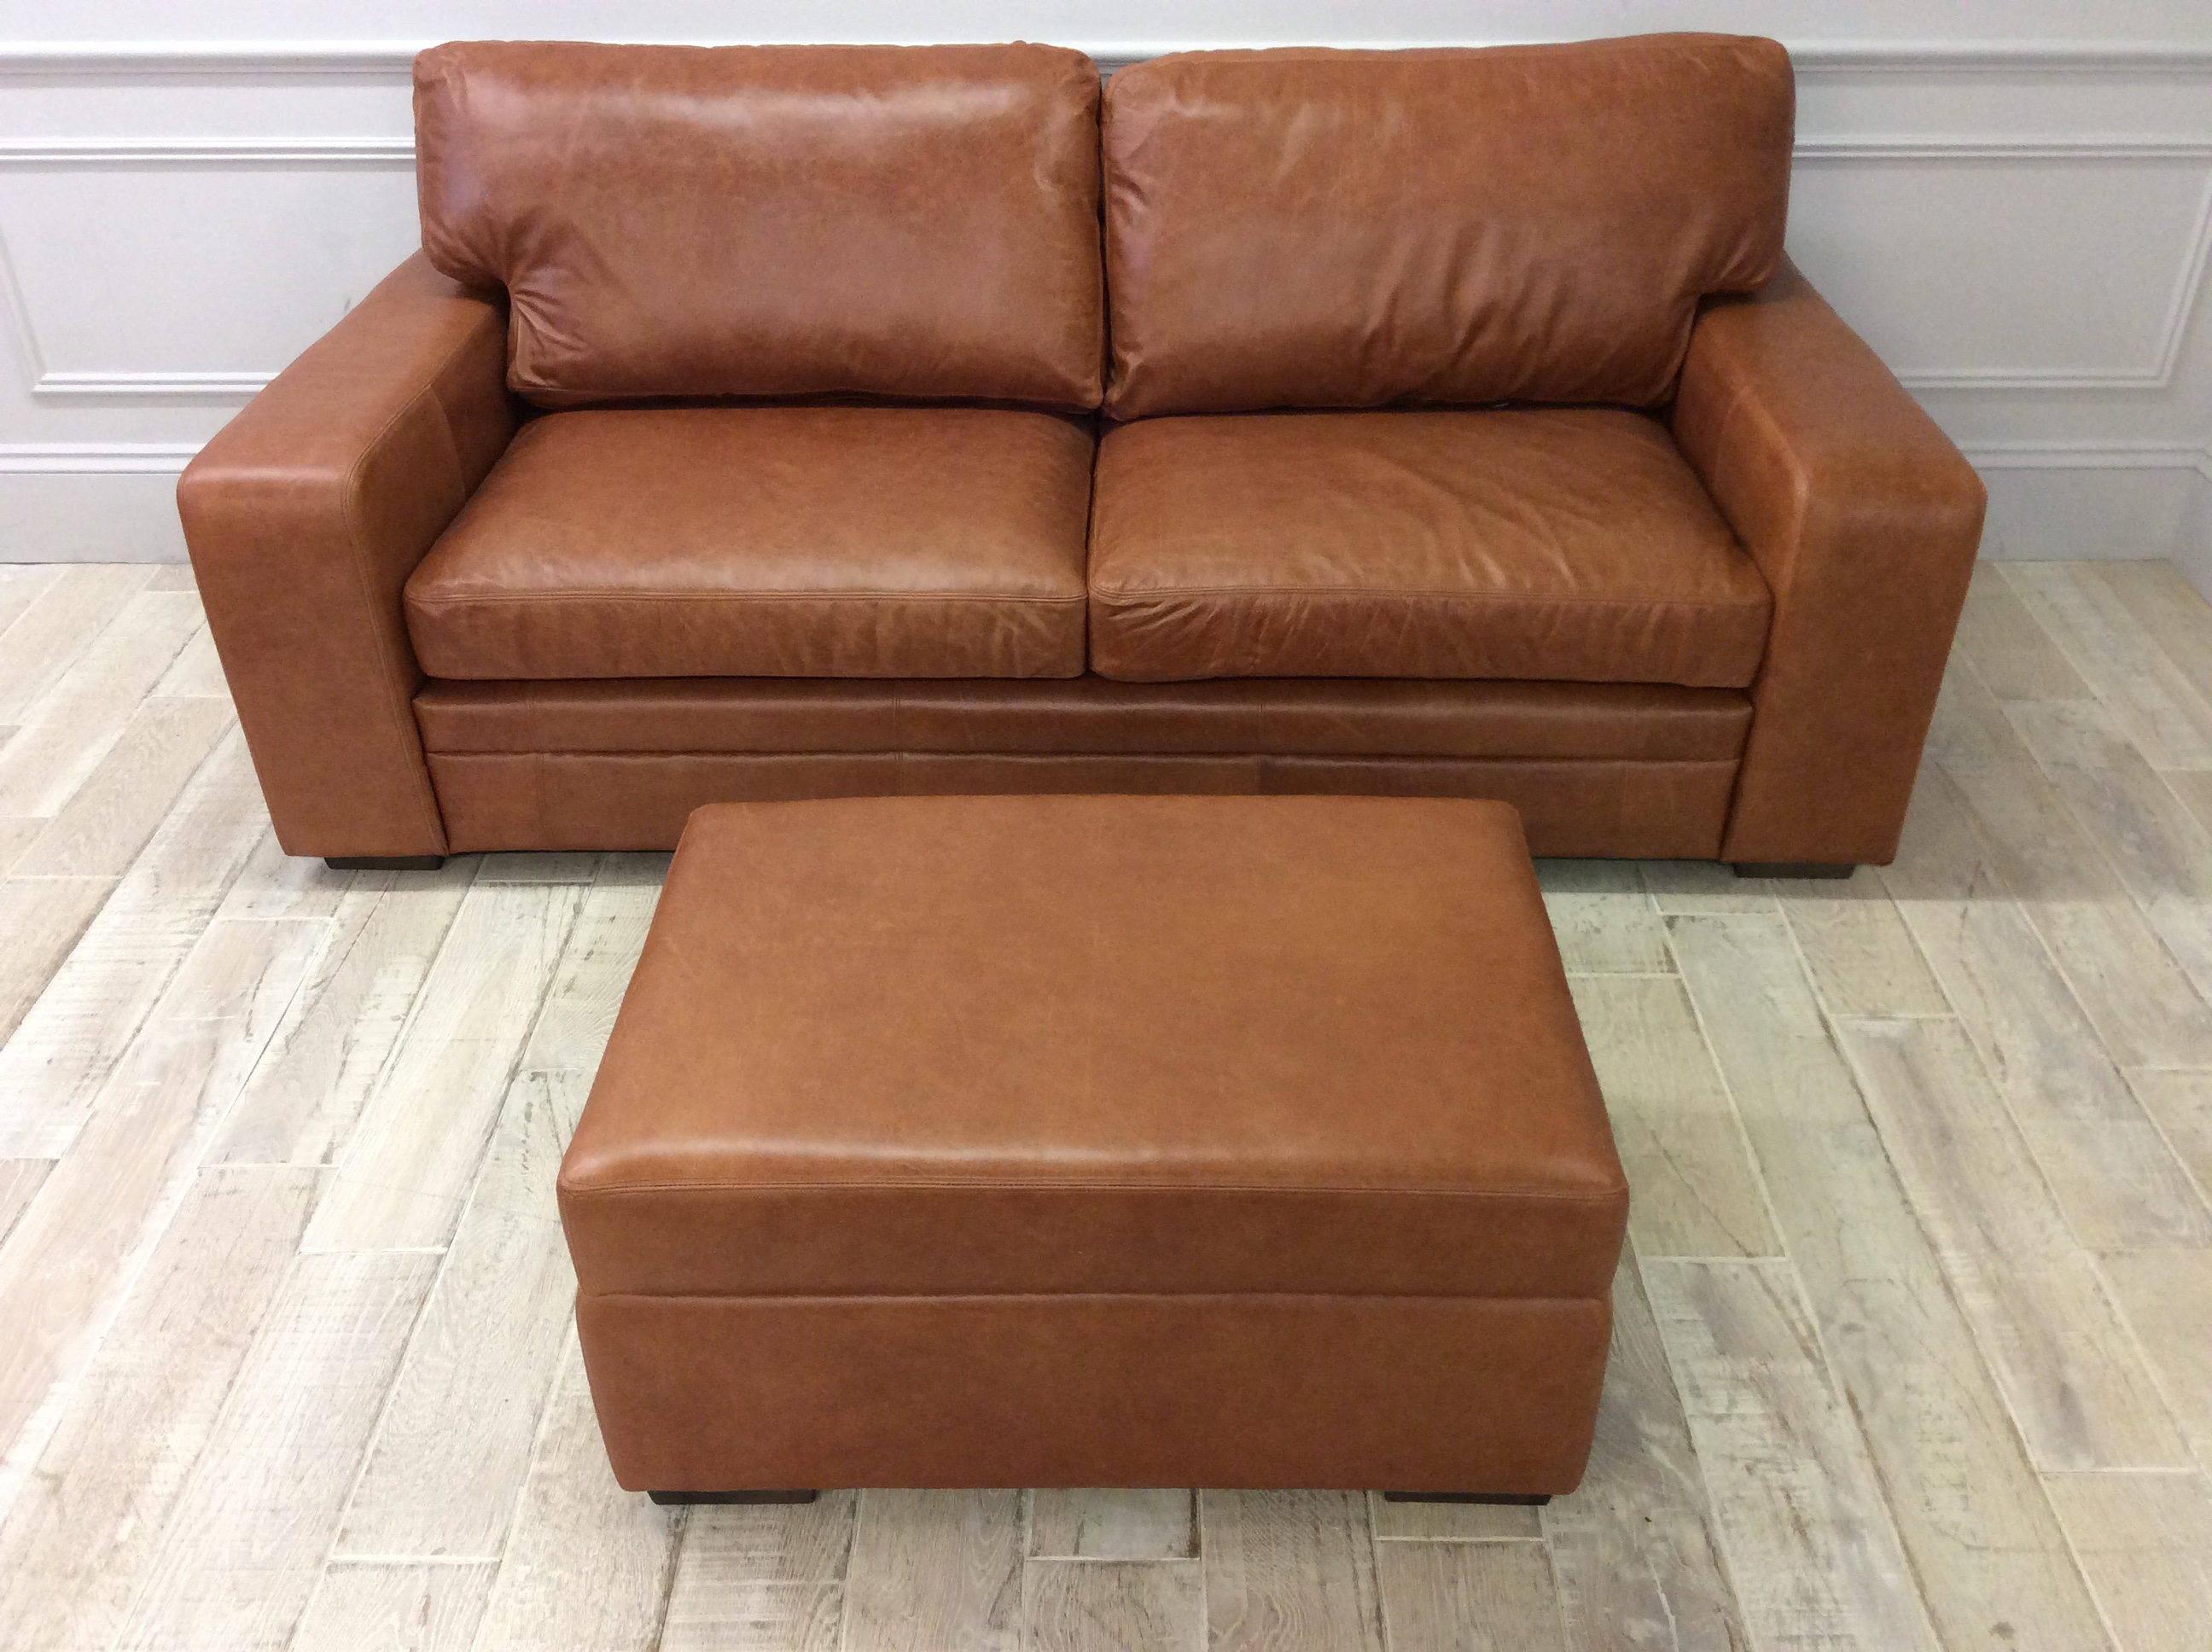 Product photograph showing Sloane 3 5 Seater Sofa With Matching Ottoman In Old English Tan Leather